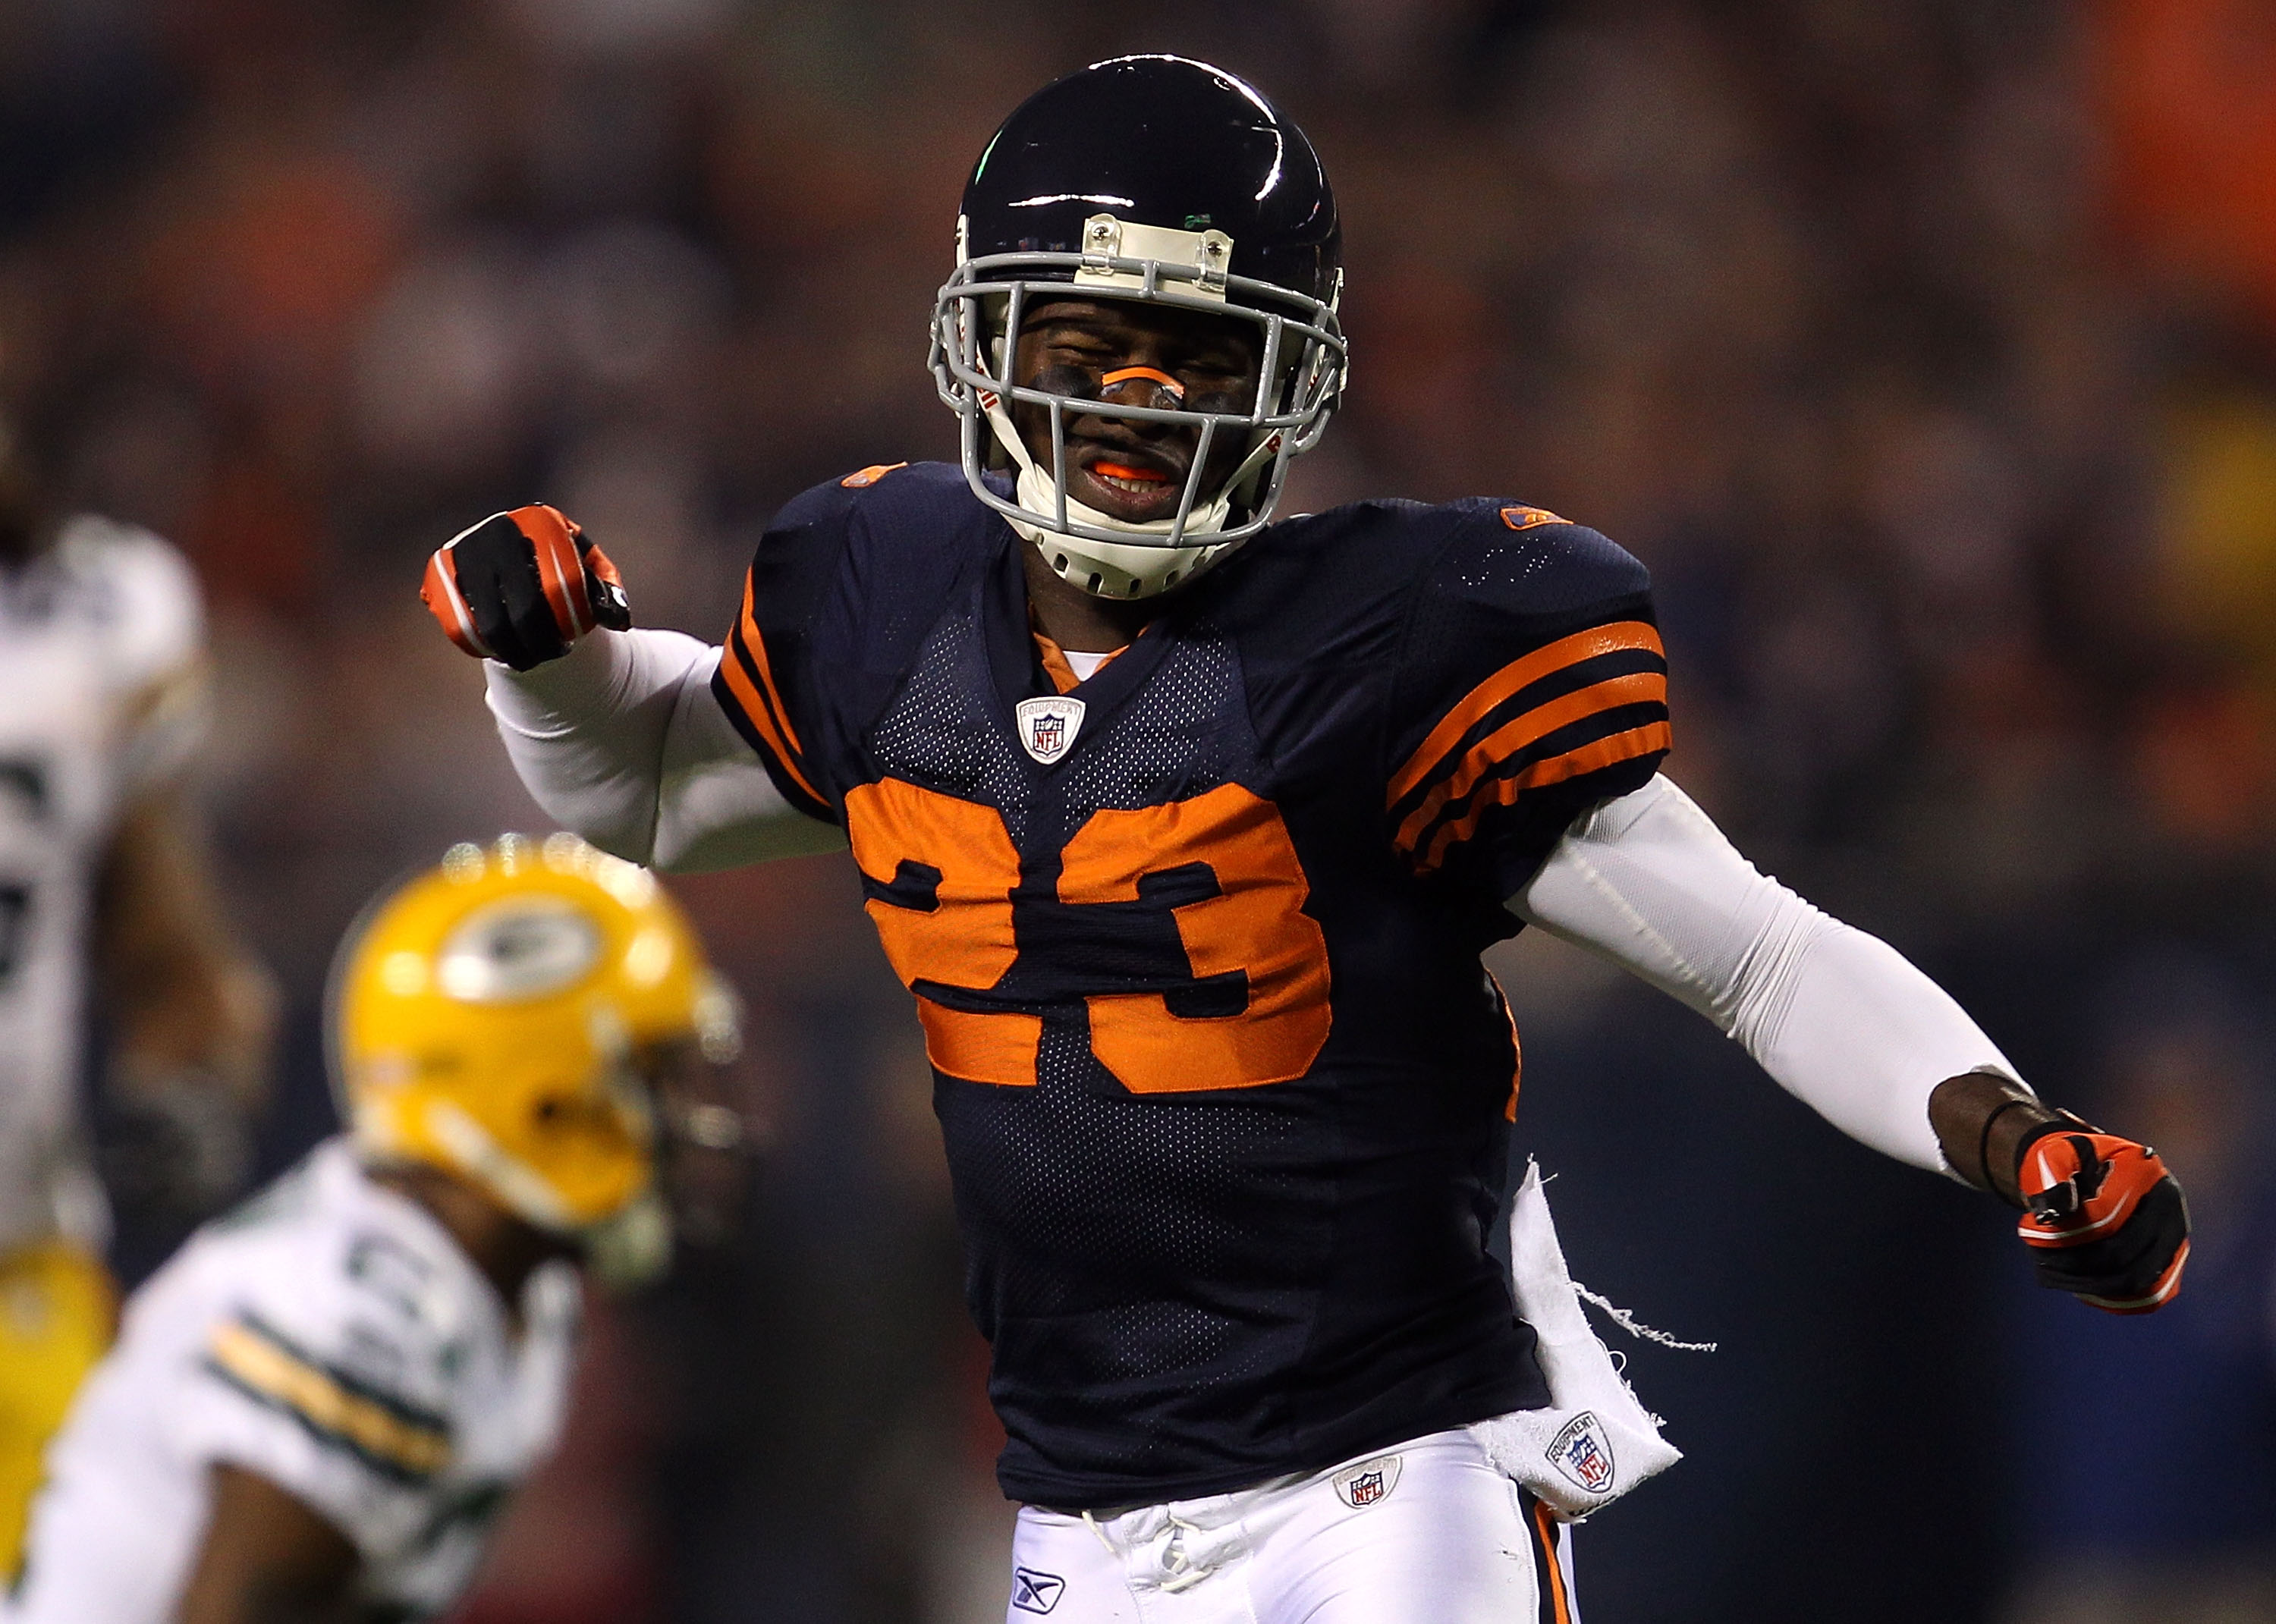 CHICAGO - SEPTEMBER 27:  Devin Hester #23 of the Chicago Bears reacts after he was interfered with on a pass play in the first quarter against Charles Woodson #21 of the Green Bay Packers at Soldier Field on September 27, 2010 in Chicago, Illinois.  (Phot